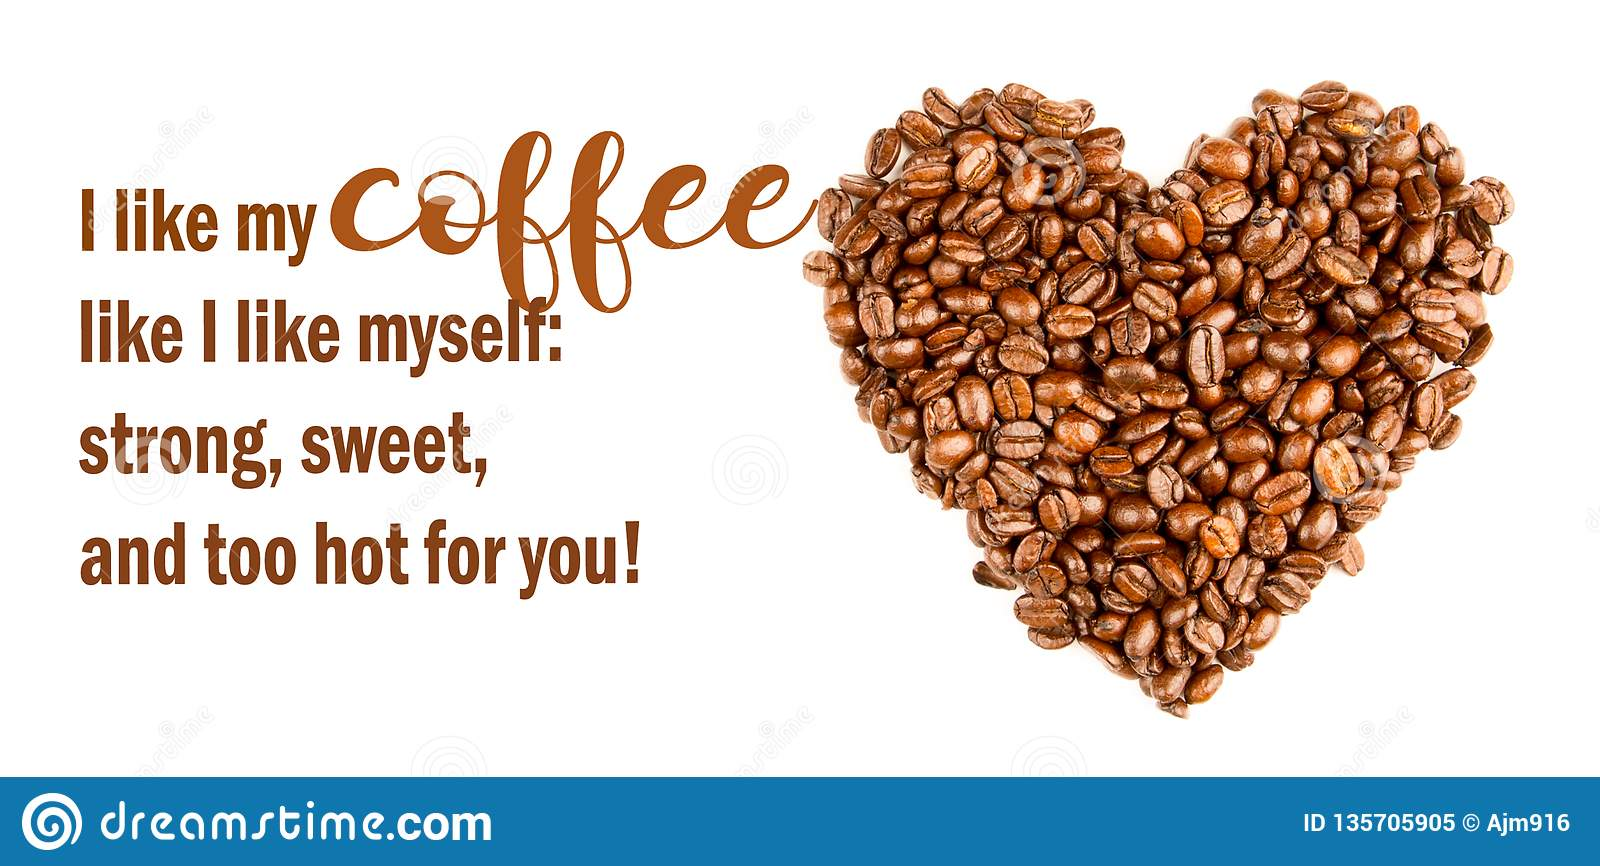 Funny Coffee Memes Sassy,Coffee Sweet As Love. Cool Quotes Stock ... #coffeeBean